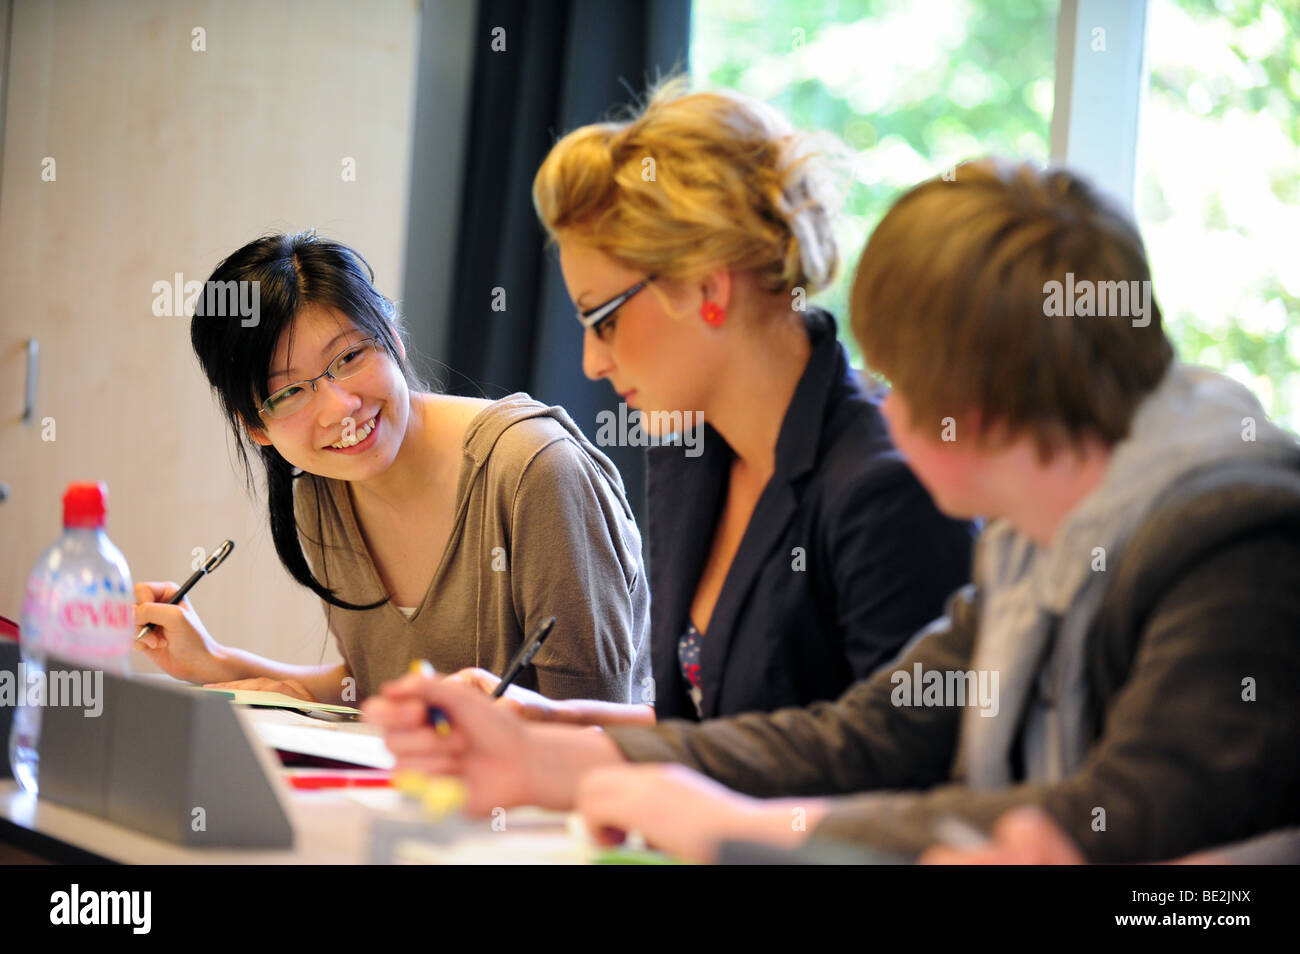 Students in class at sixth form further education college - Stock Image